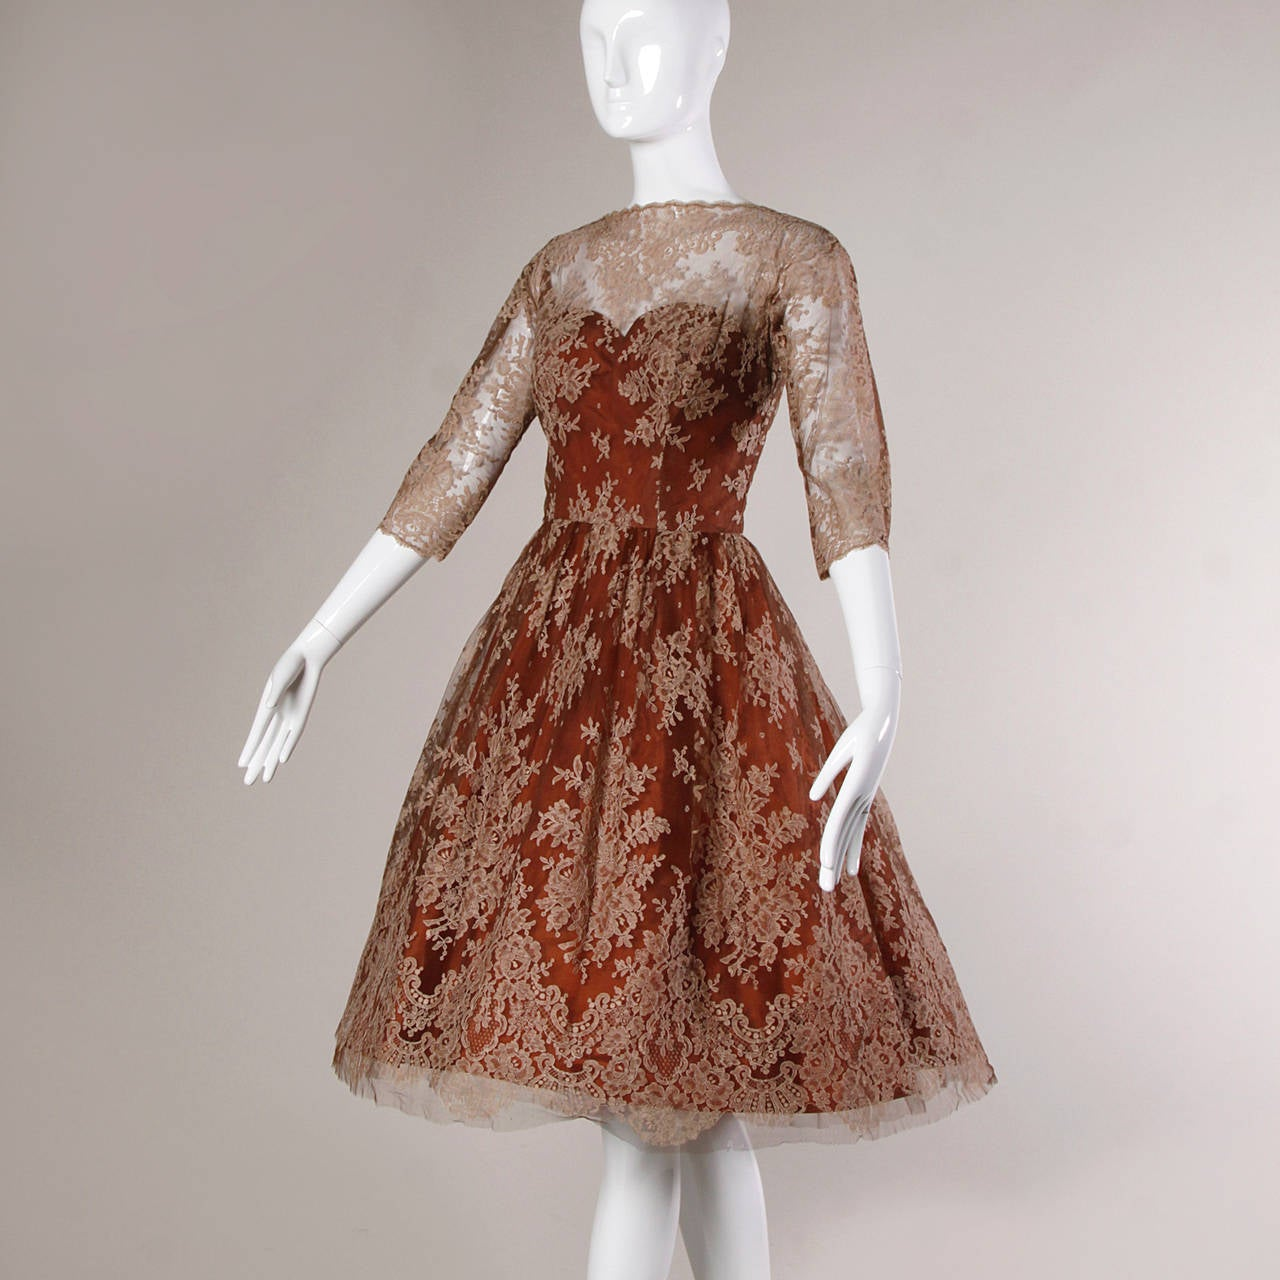 Dreamy 1950s Brown Tulle Chantilly Lace Cocktail Dress 6